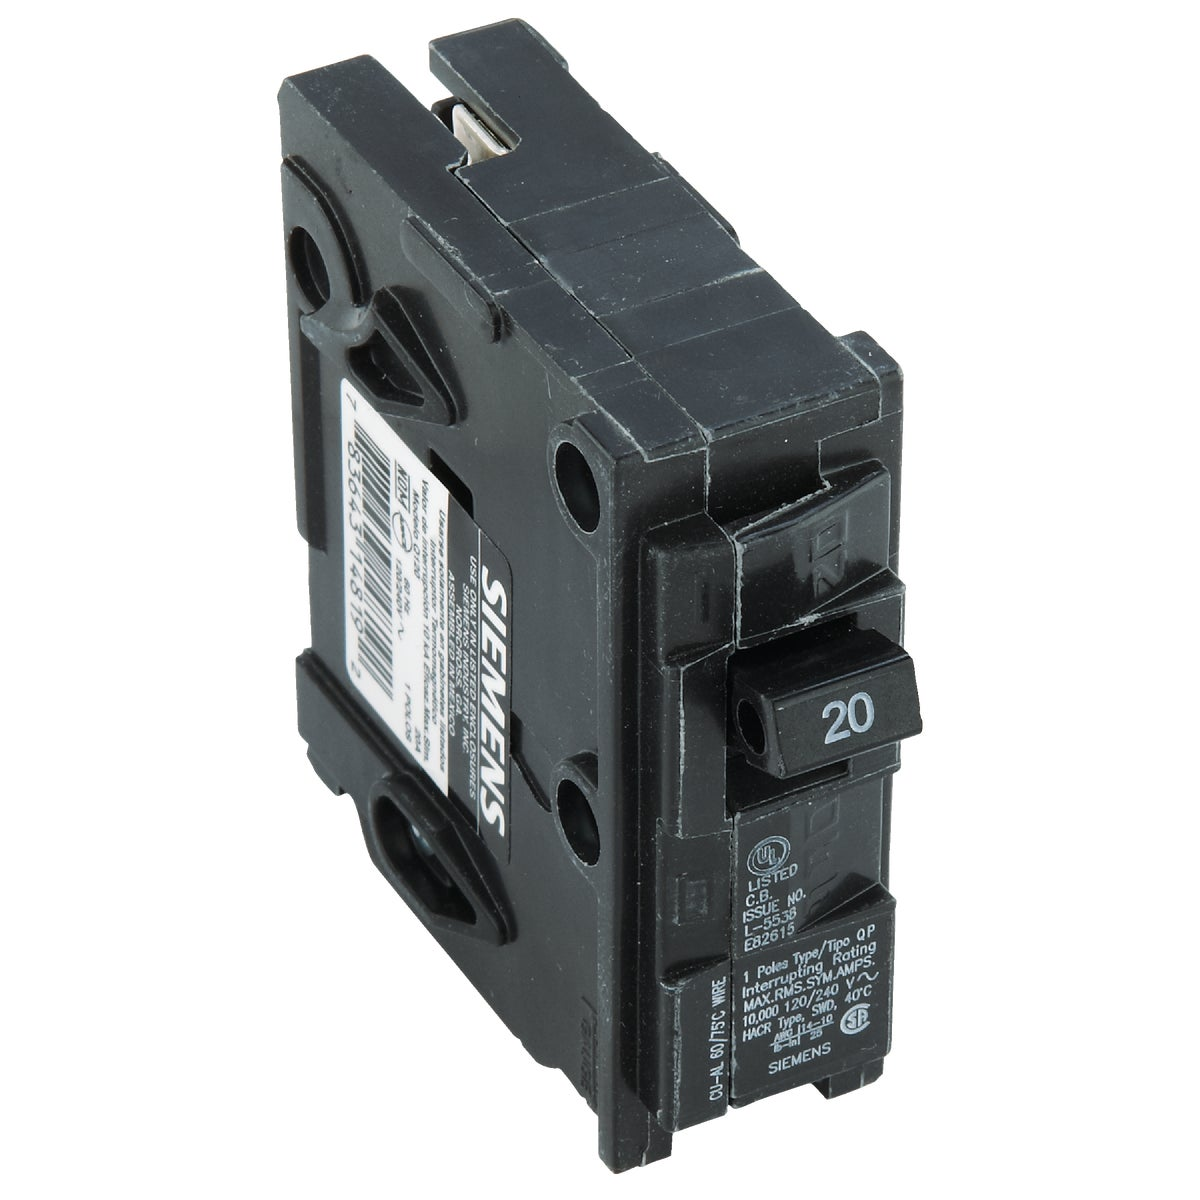 20A SP CIRCUIT BREAKER - ICBQ120 by Connecticut Electric